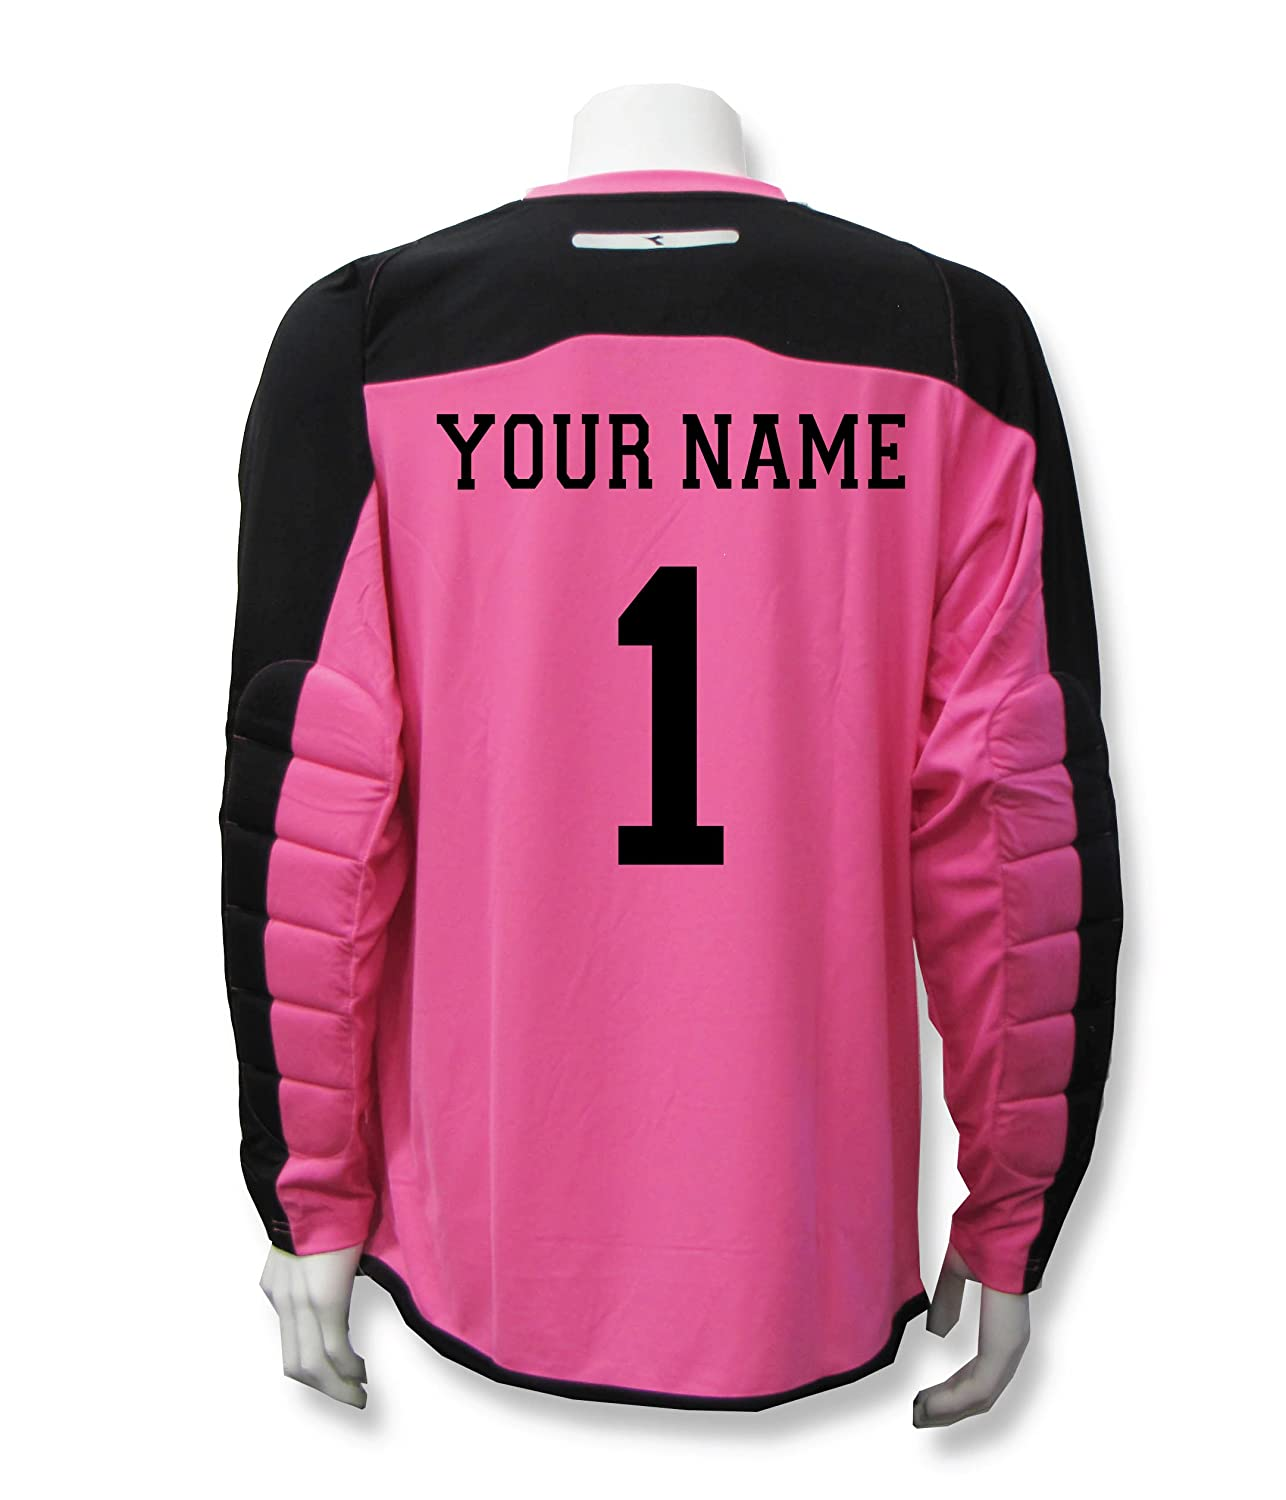 Diadora Enzo Goalkeeper Jersey Personalized with your name and number B01M1A18ZS X-Large|ピンク ピンク X-Large